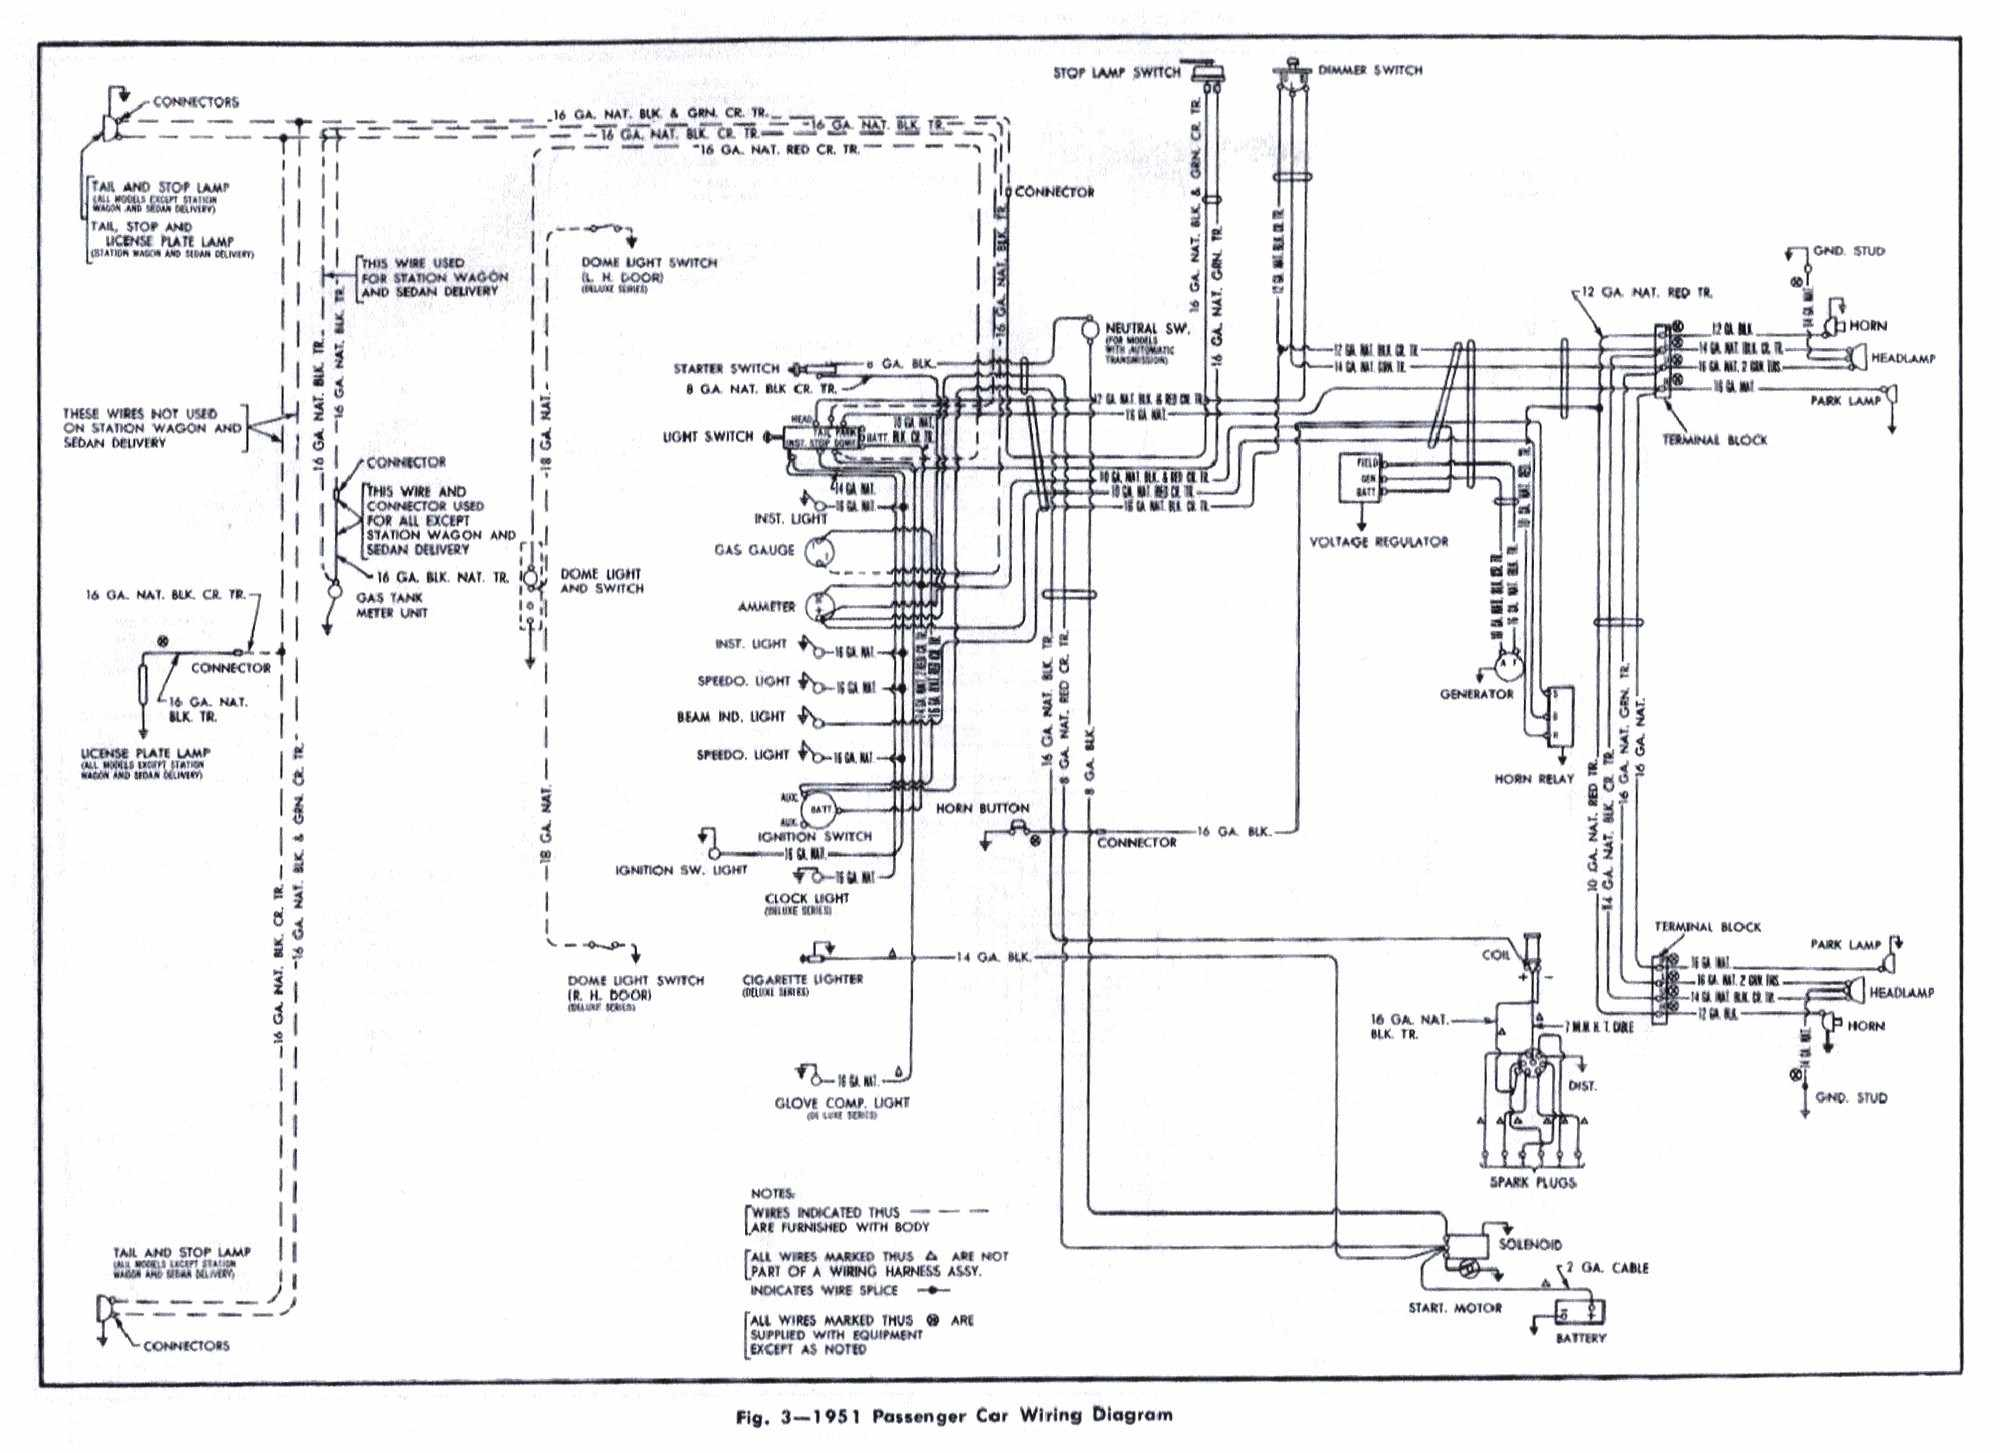 Chevrolet Car Manuals Wiring Diagrams Pdf \u0026 Fault Codes Pontiac Wiring Diagrams Automotive Chevy Wiring Diagrams Automotive